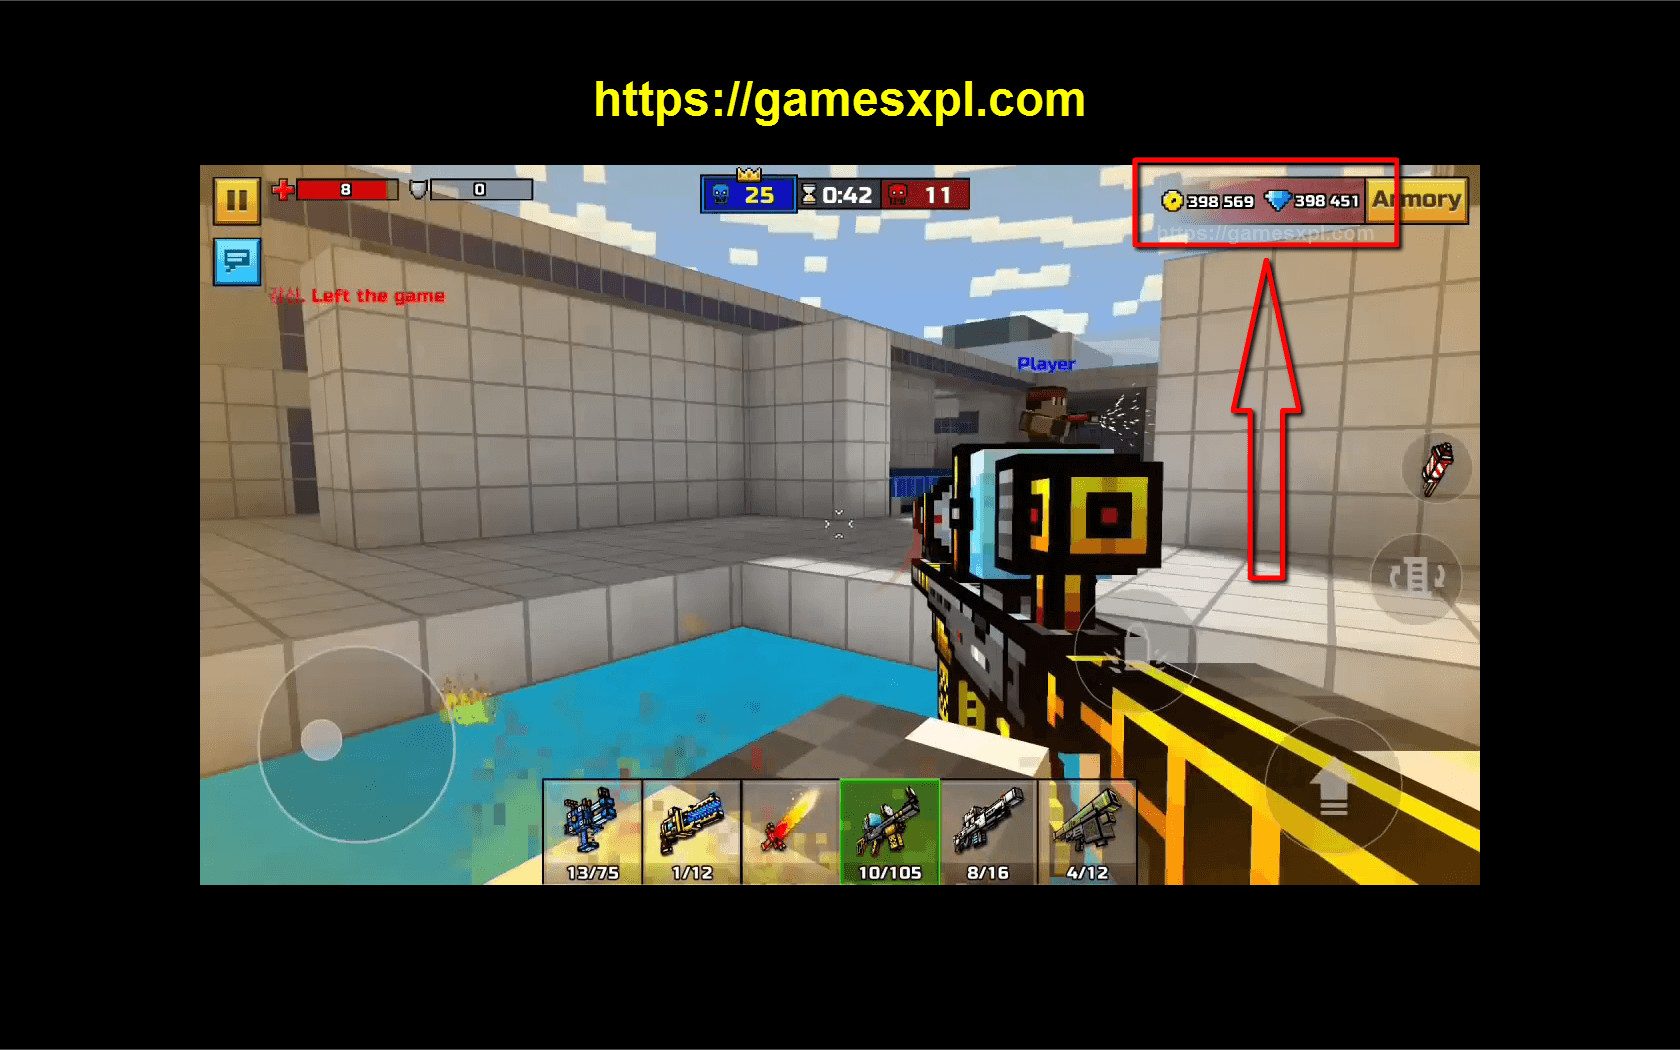 Pixel Gun 3D Hack Mod Apk-How to Get Unlimited Coins and Gems-iOS-Android-Windows